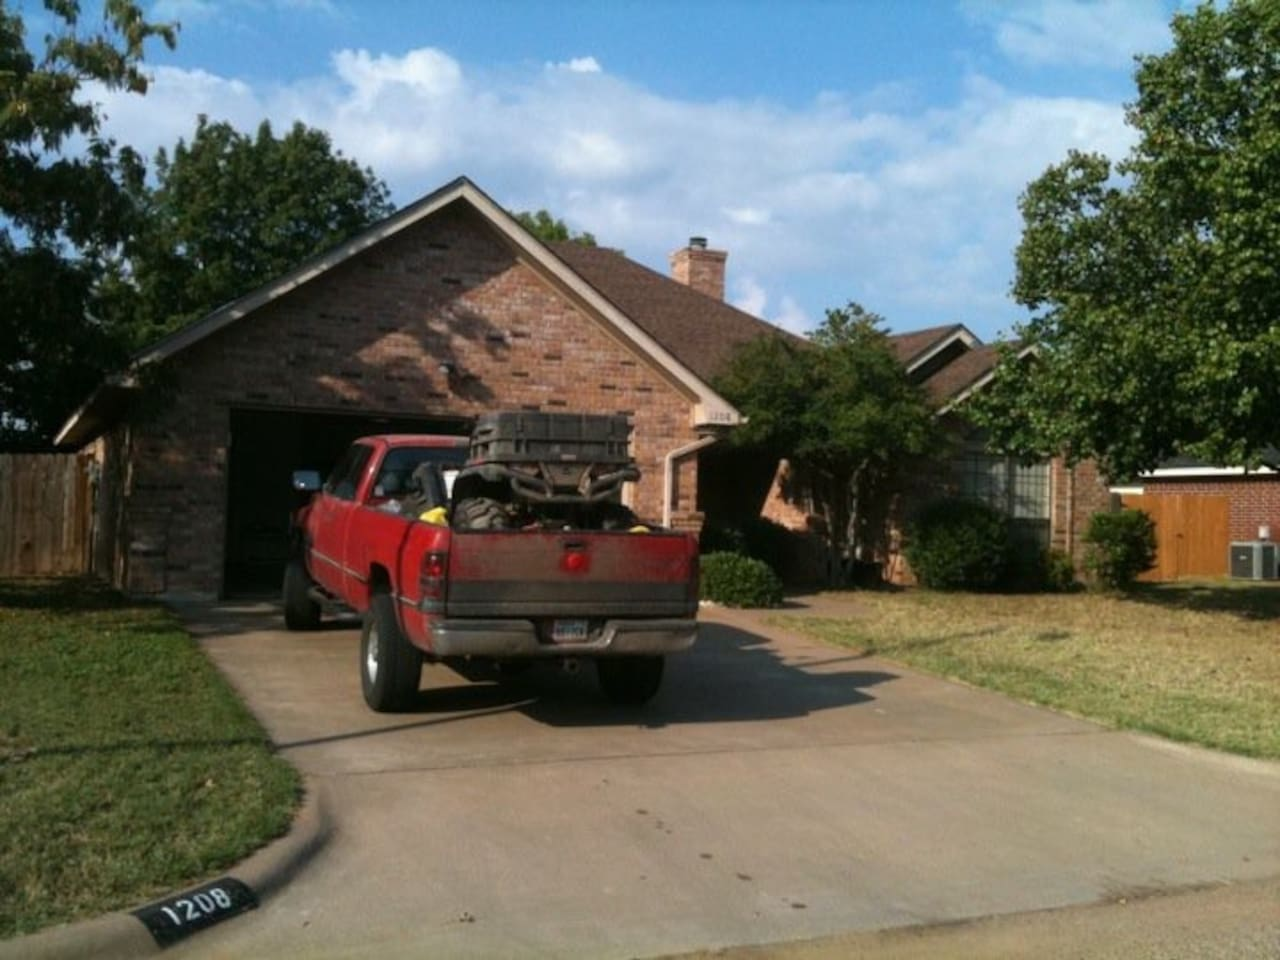 Exterior of home. (Disregard the dirty truck.)